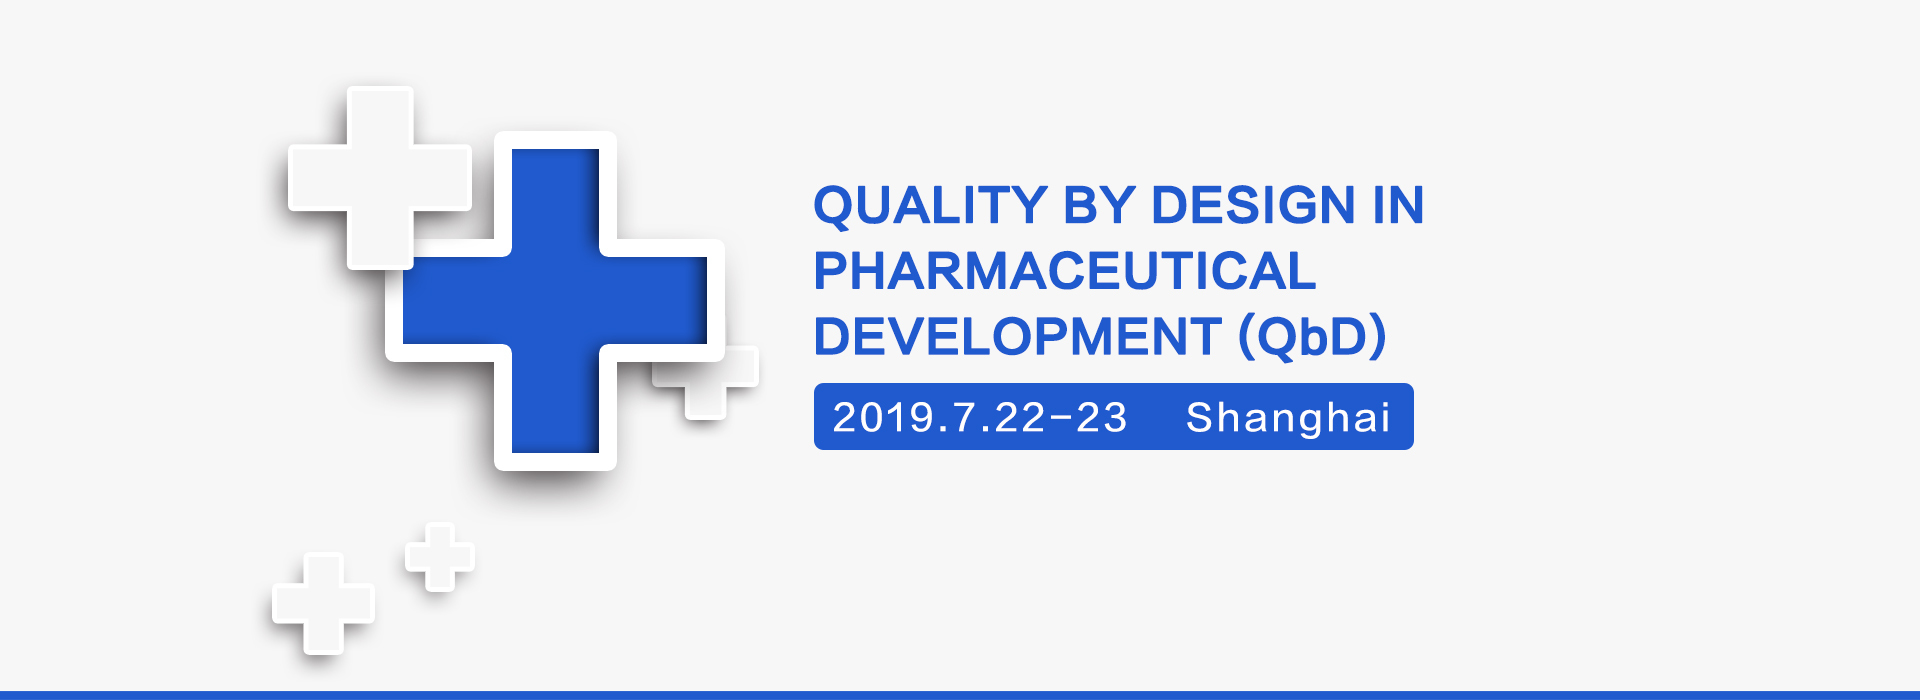 QUALITY BY DESIGN IN  PHARMACEUTICAL DEVELOPMENT (QbD)